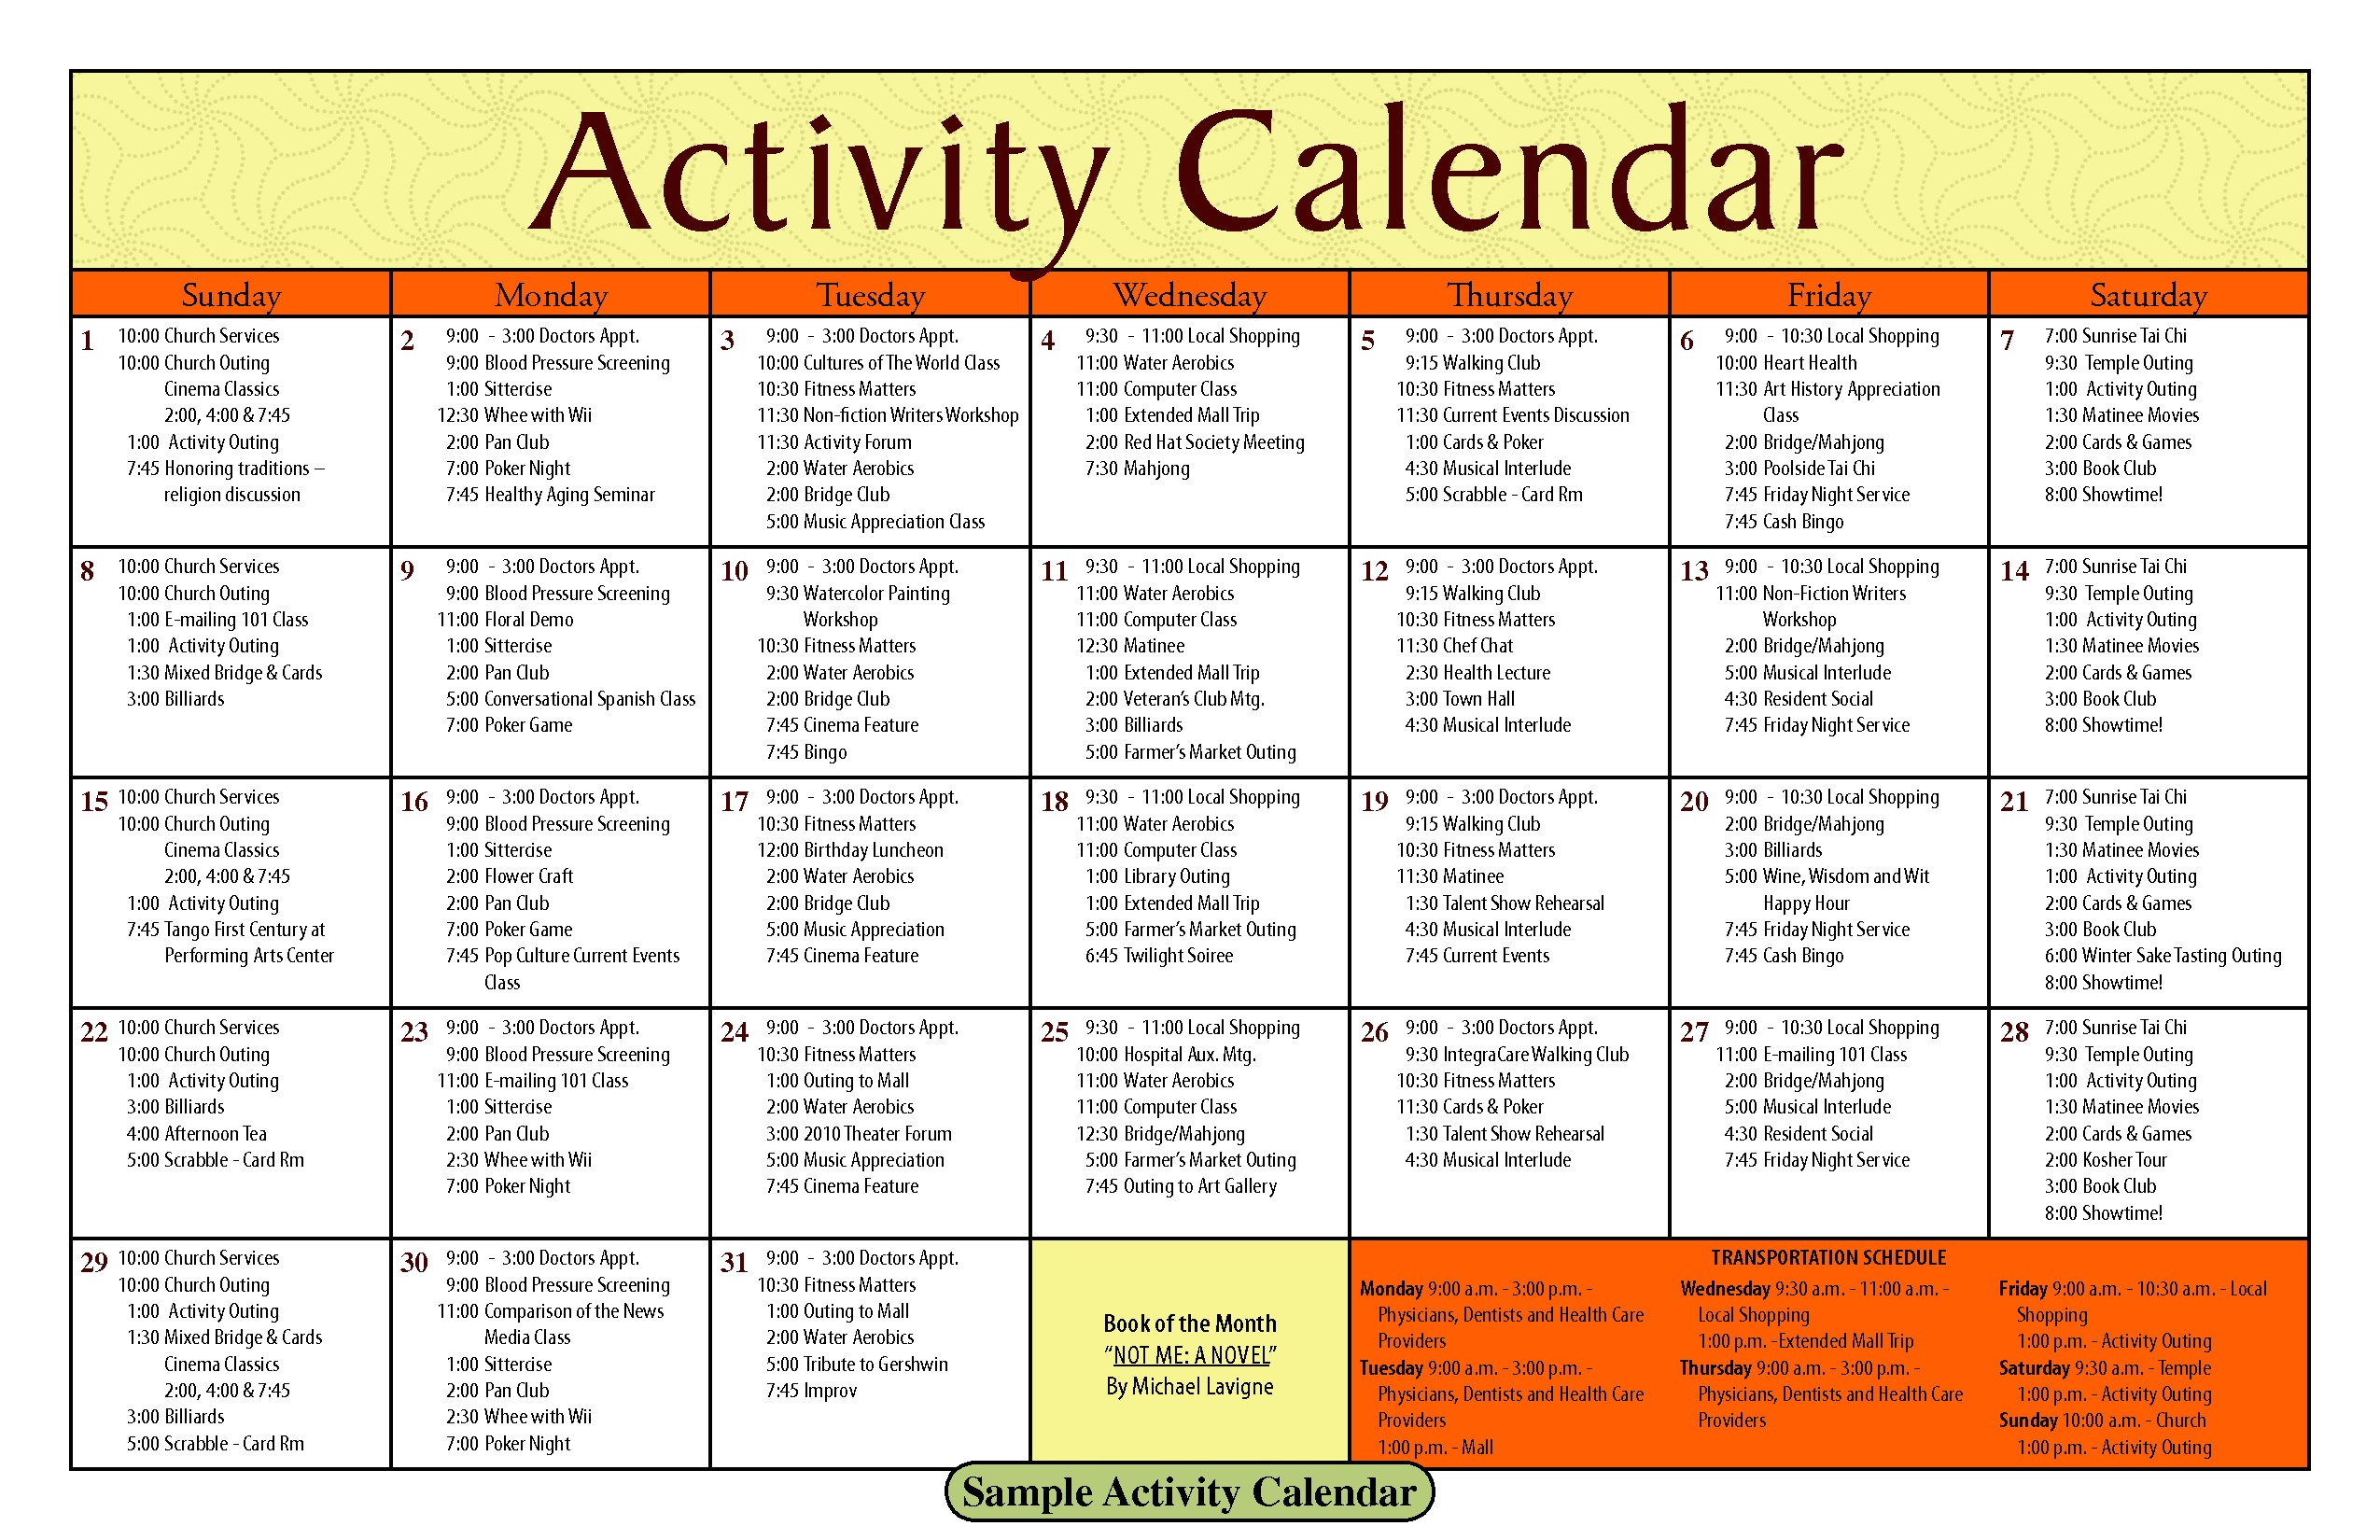 Activity Calendar Template for Seniors 14 Blank Activity Calendar Template Images Printable